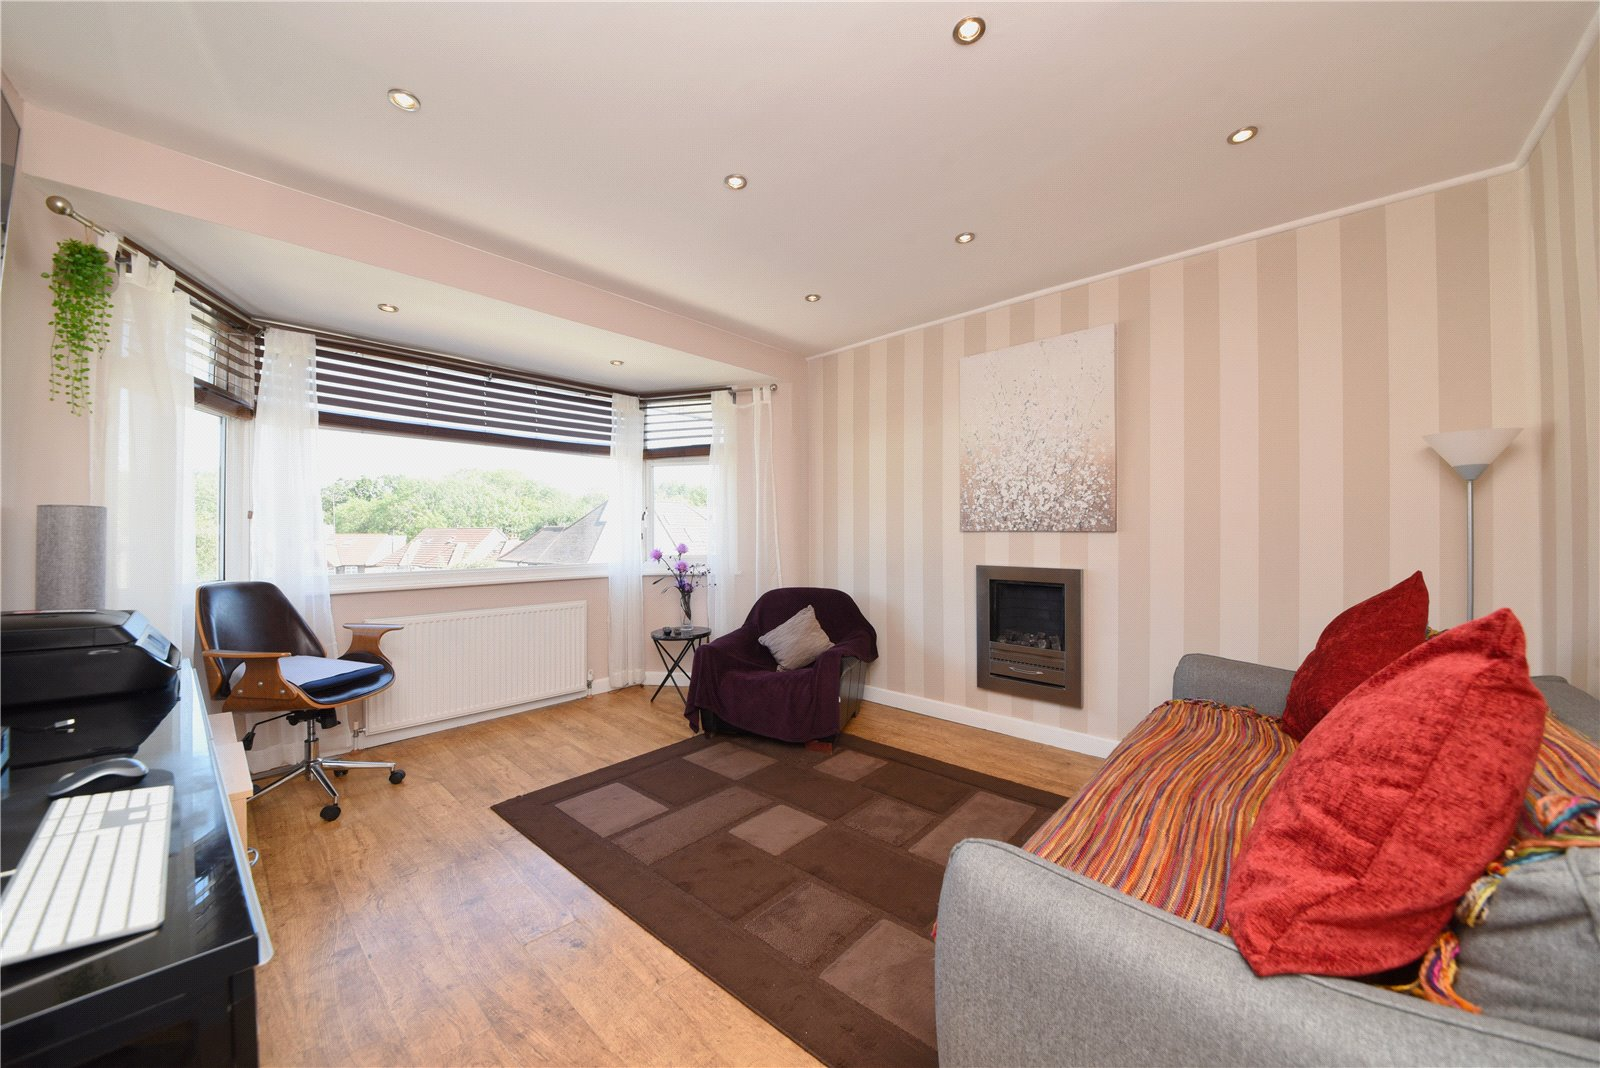 1 bed apartment for sale in Hendon, NW4 1NJ - Property Image 1